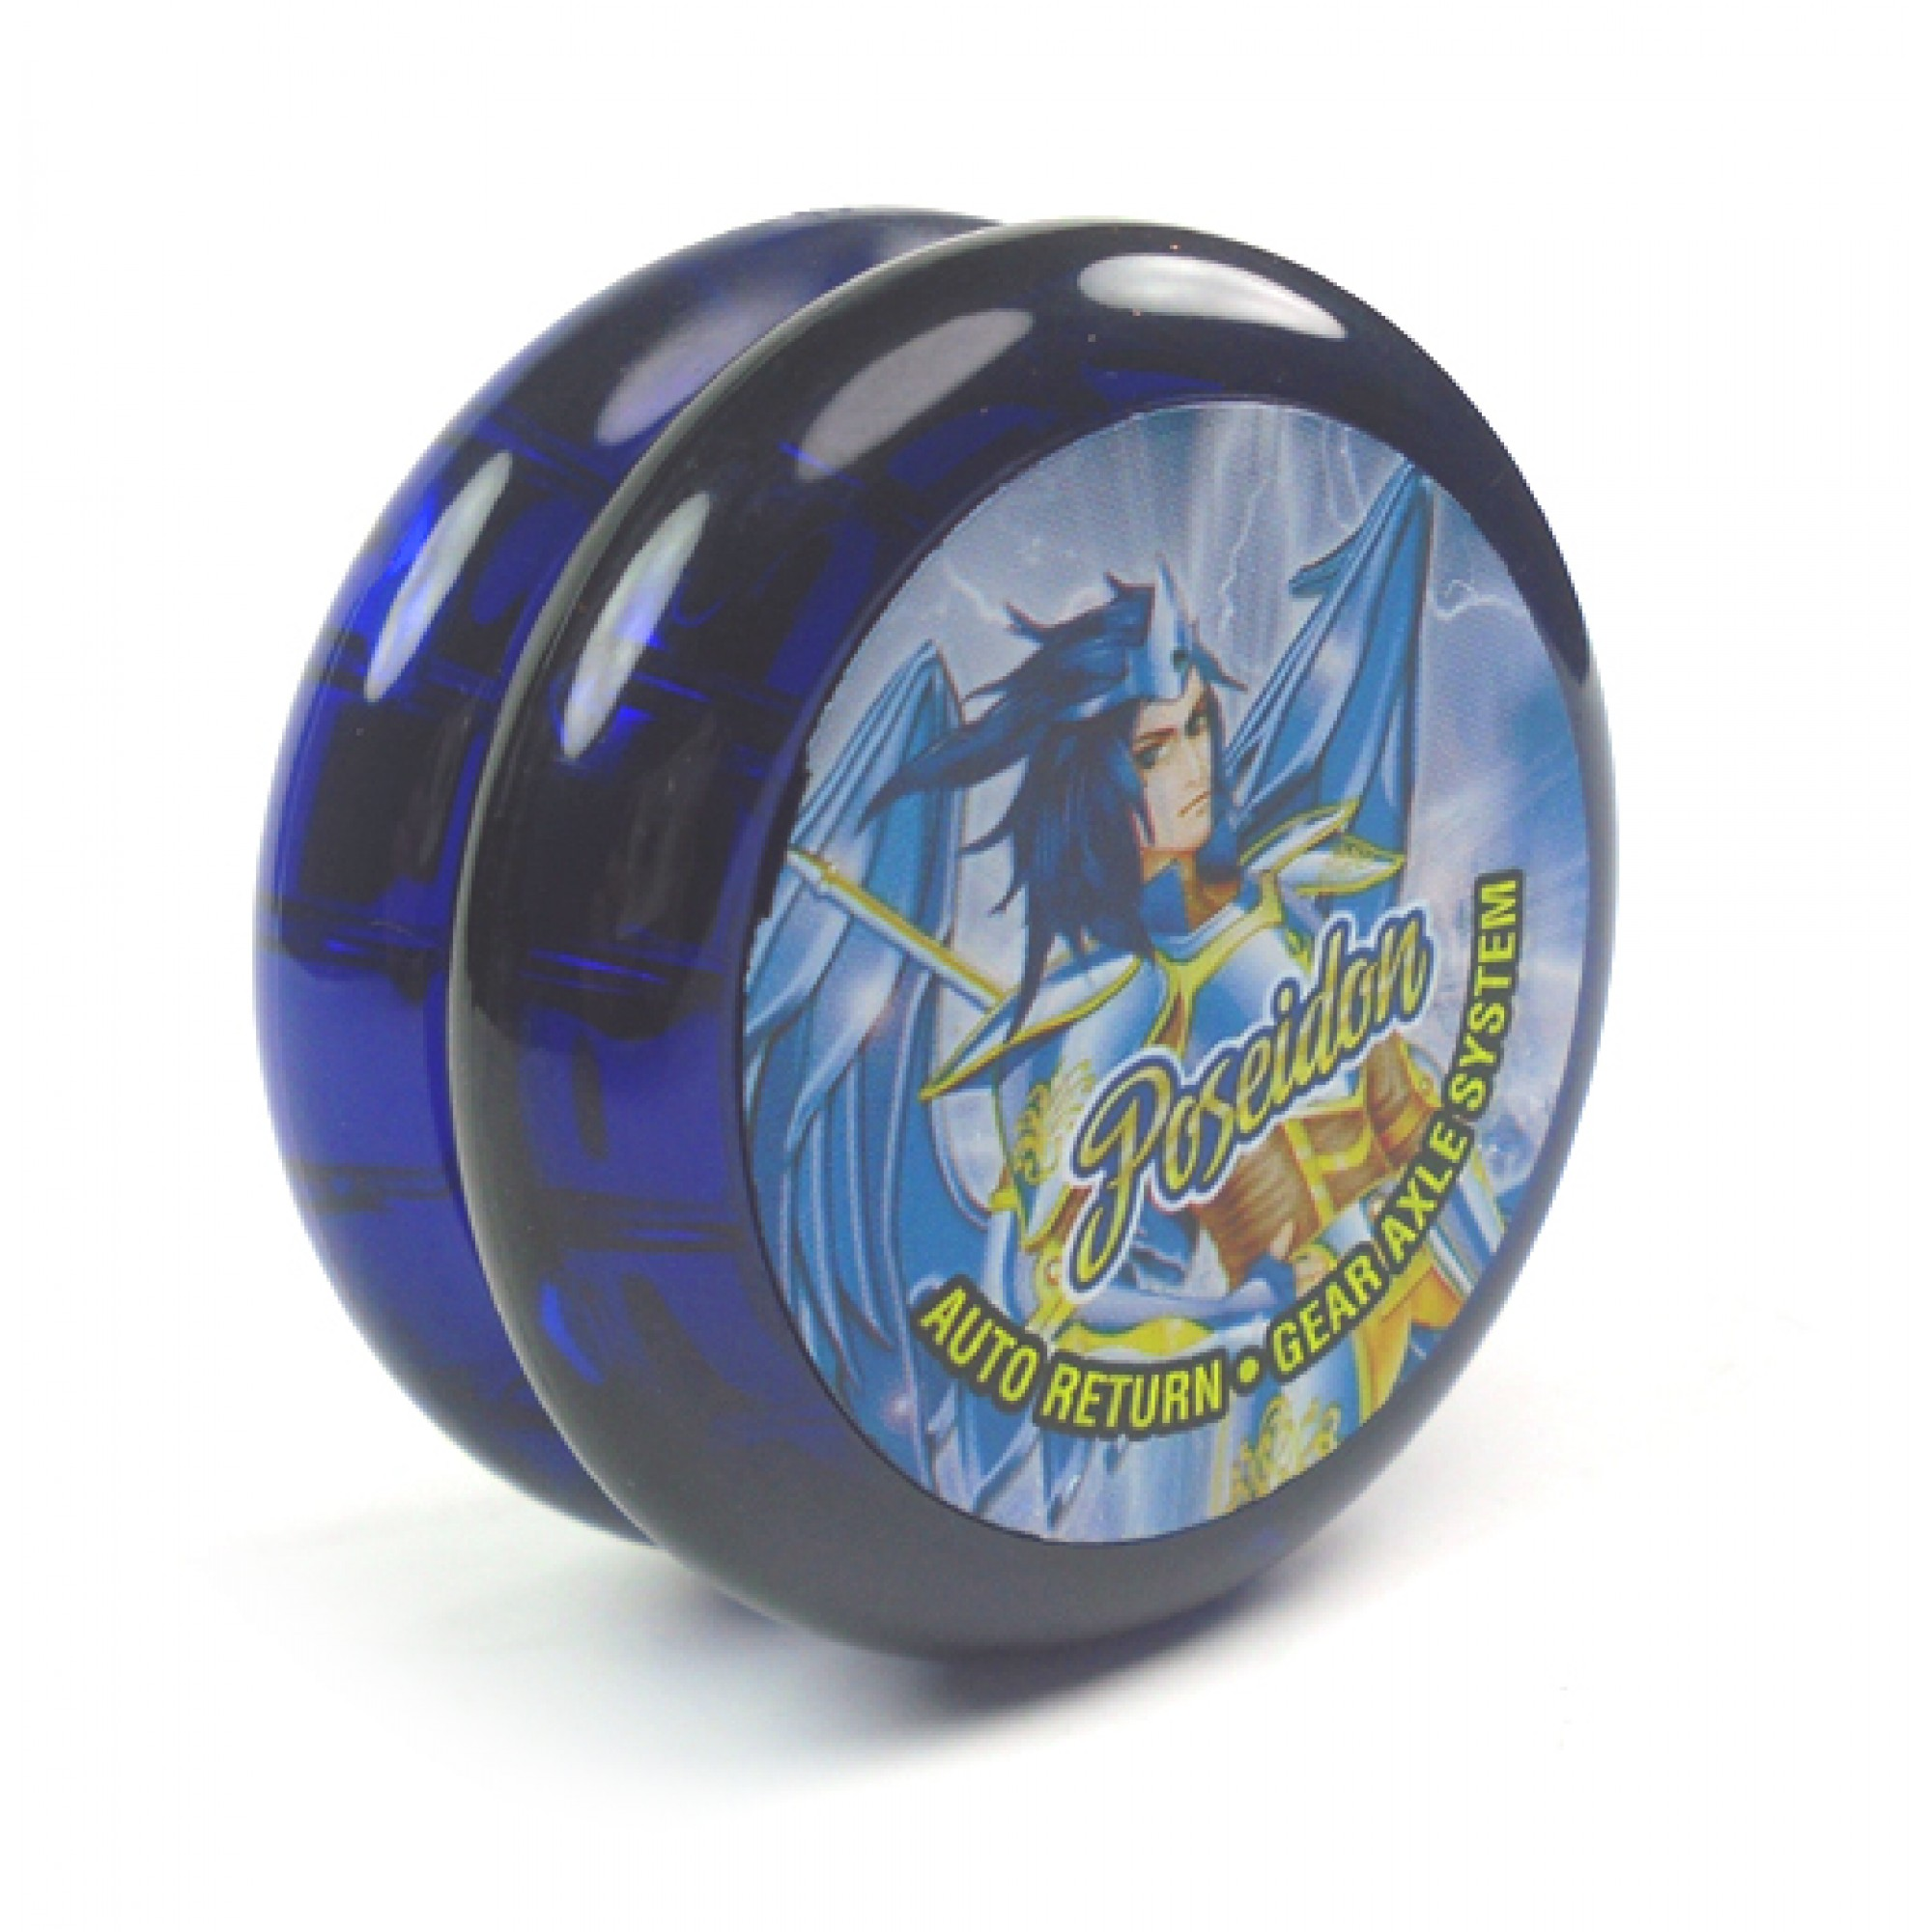 MythHeros Magic Return Yoyo (Poseidon)